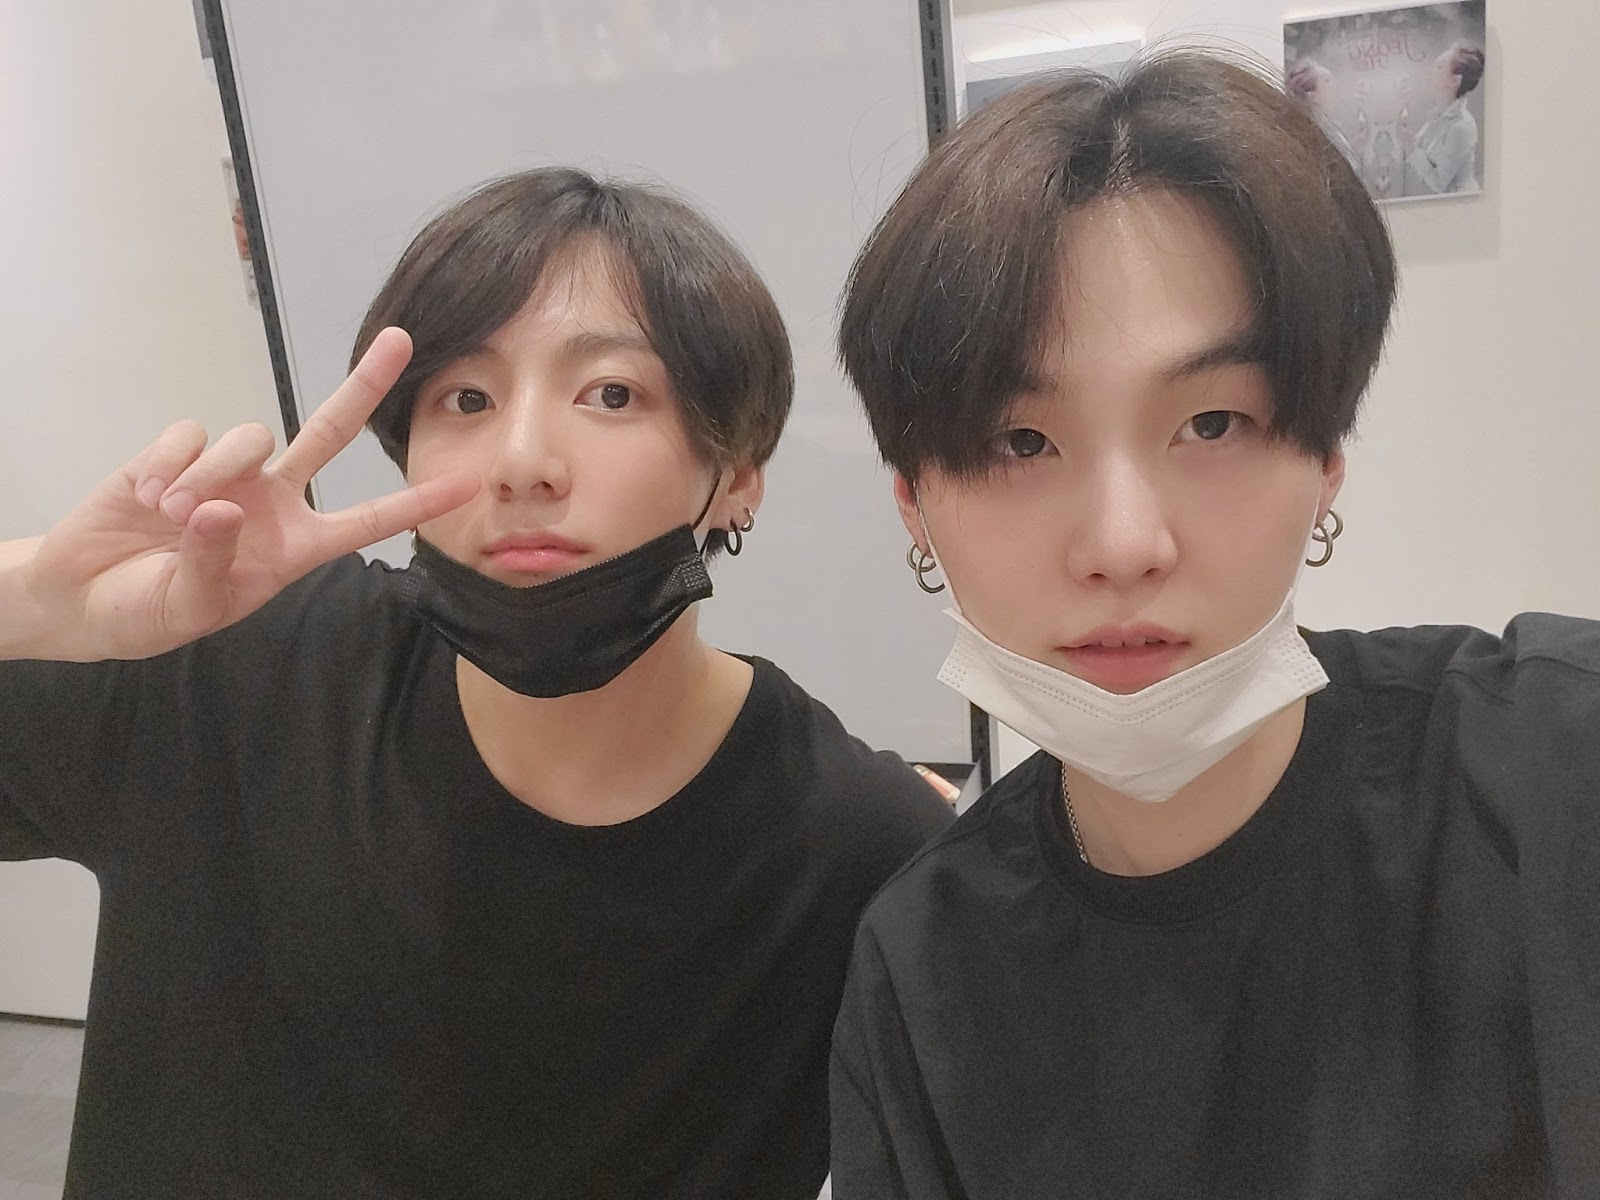 bts-jungkook-appears-on-sugas-honey-fm-still-with-you-singer-apologises-to-army-for-itaewon-outing-incident